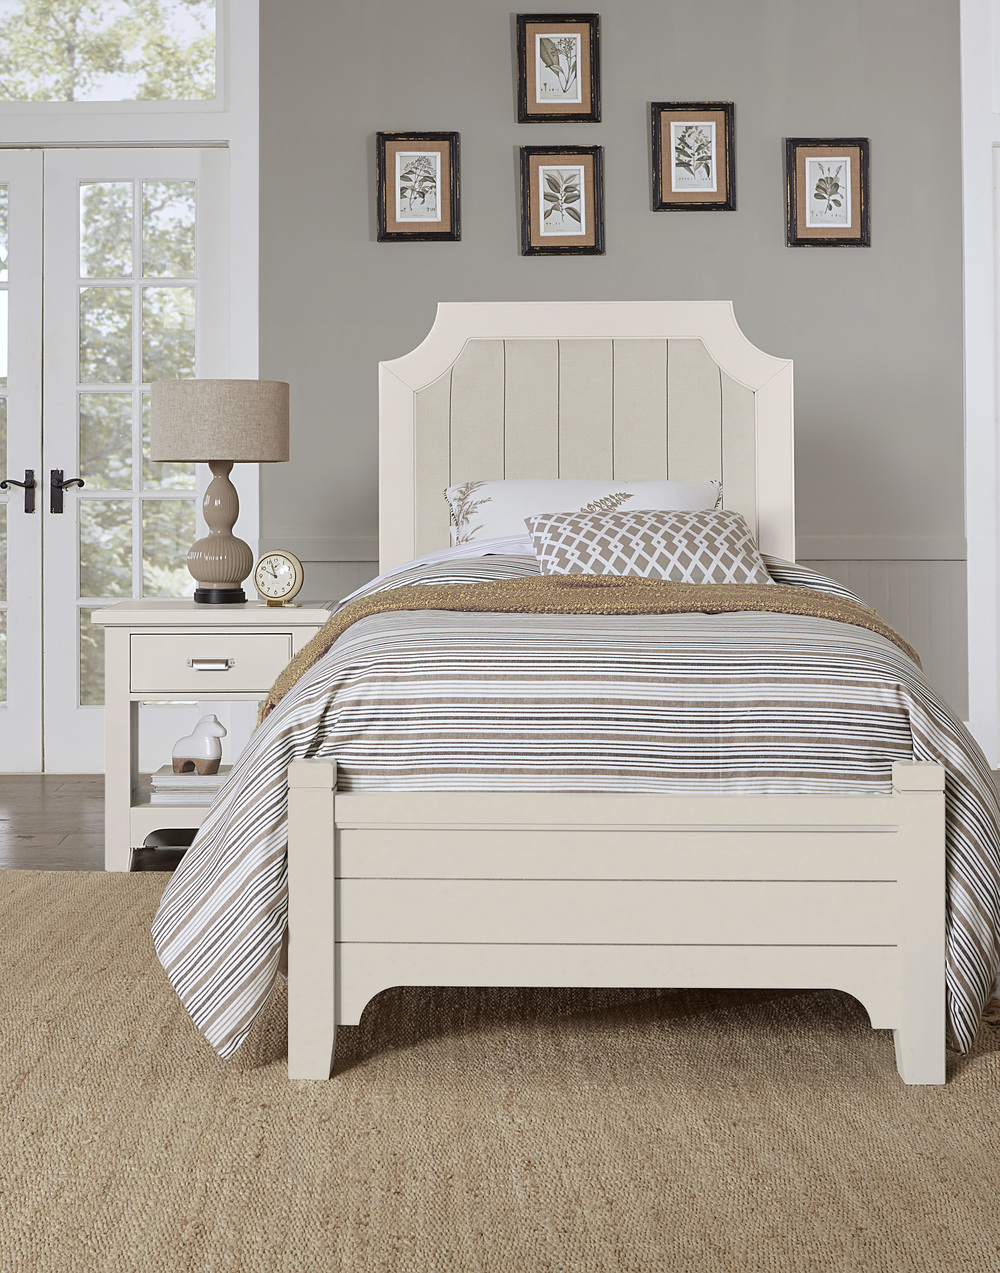 Vaughan Bassett - Upholstered Bed